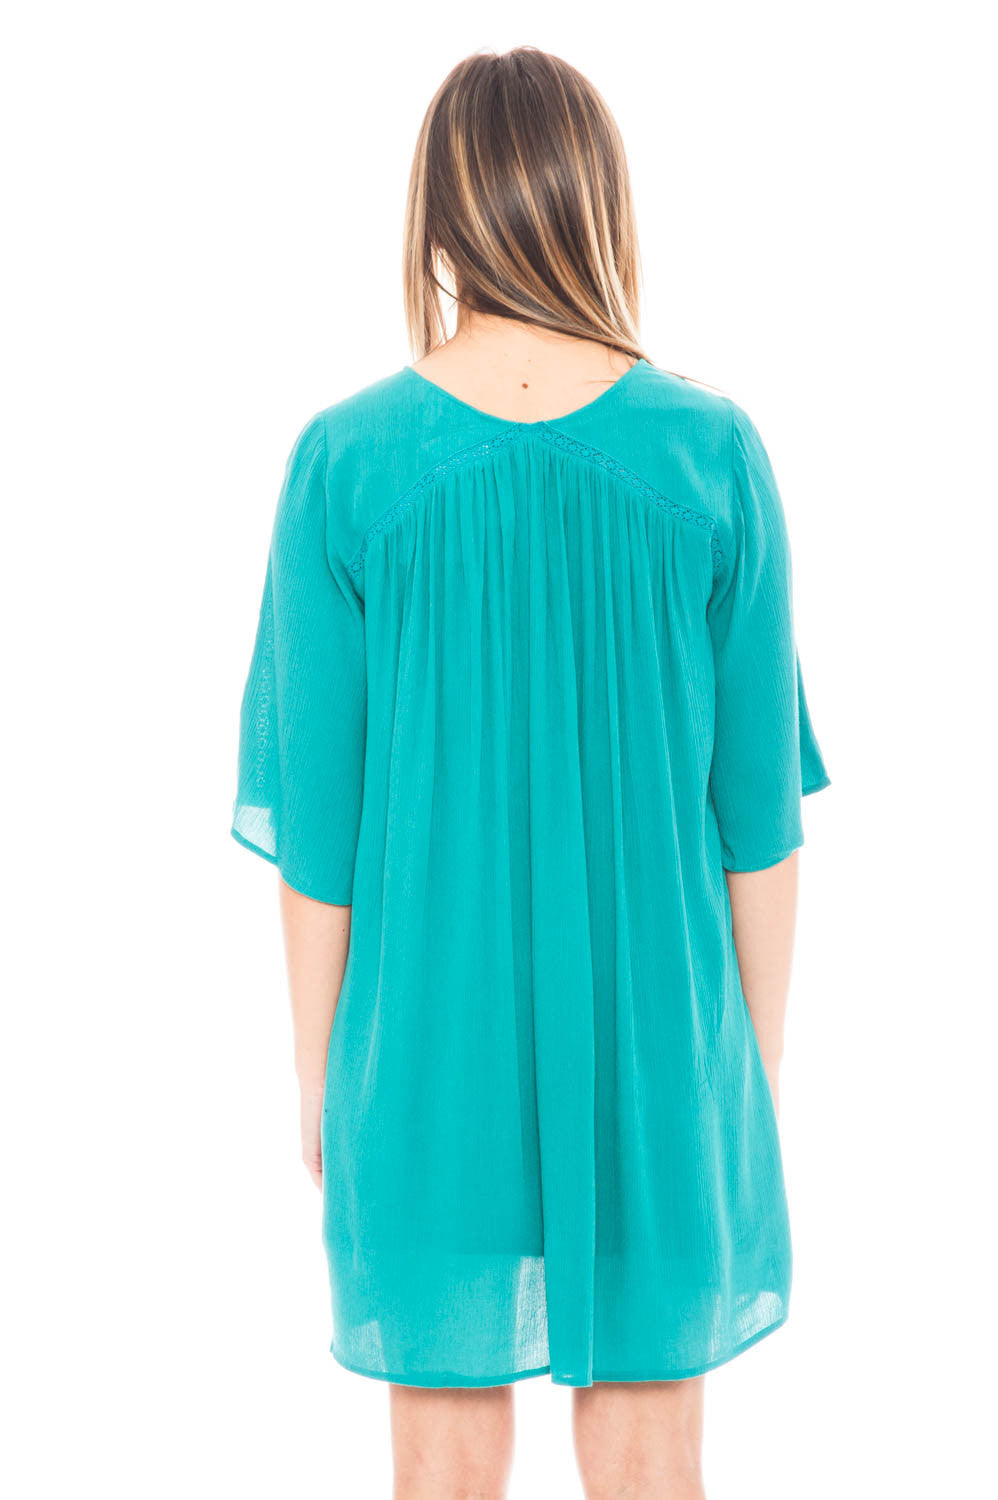 Dress - BB Dakota Chiffon Dress with Lace Up Front